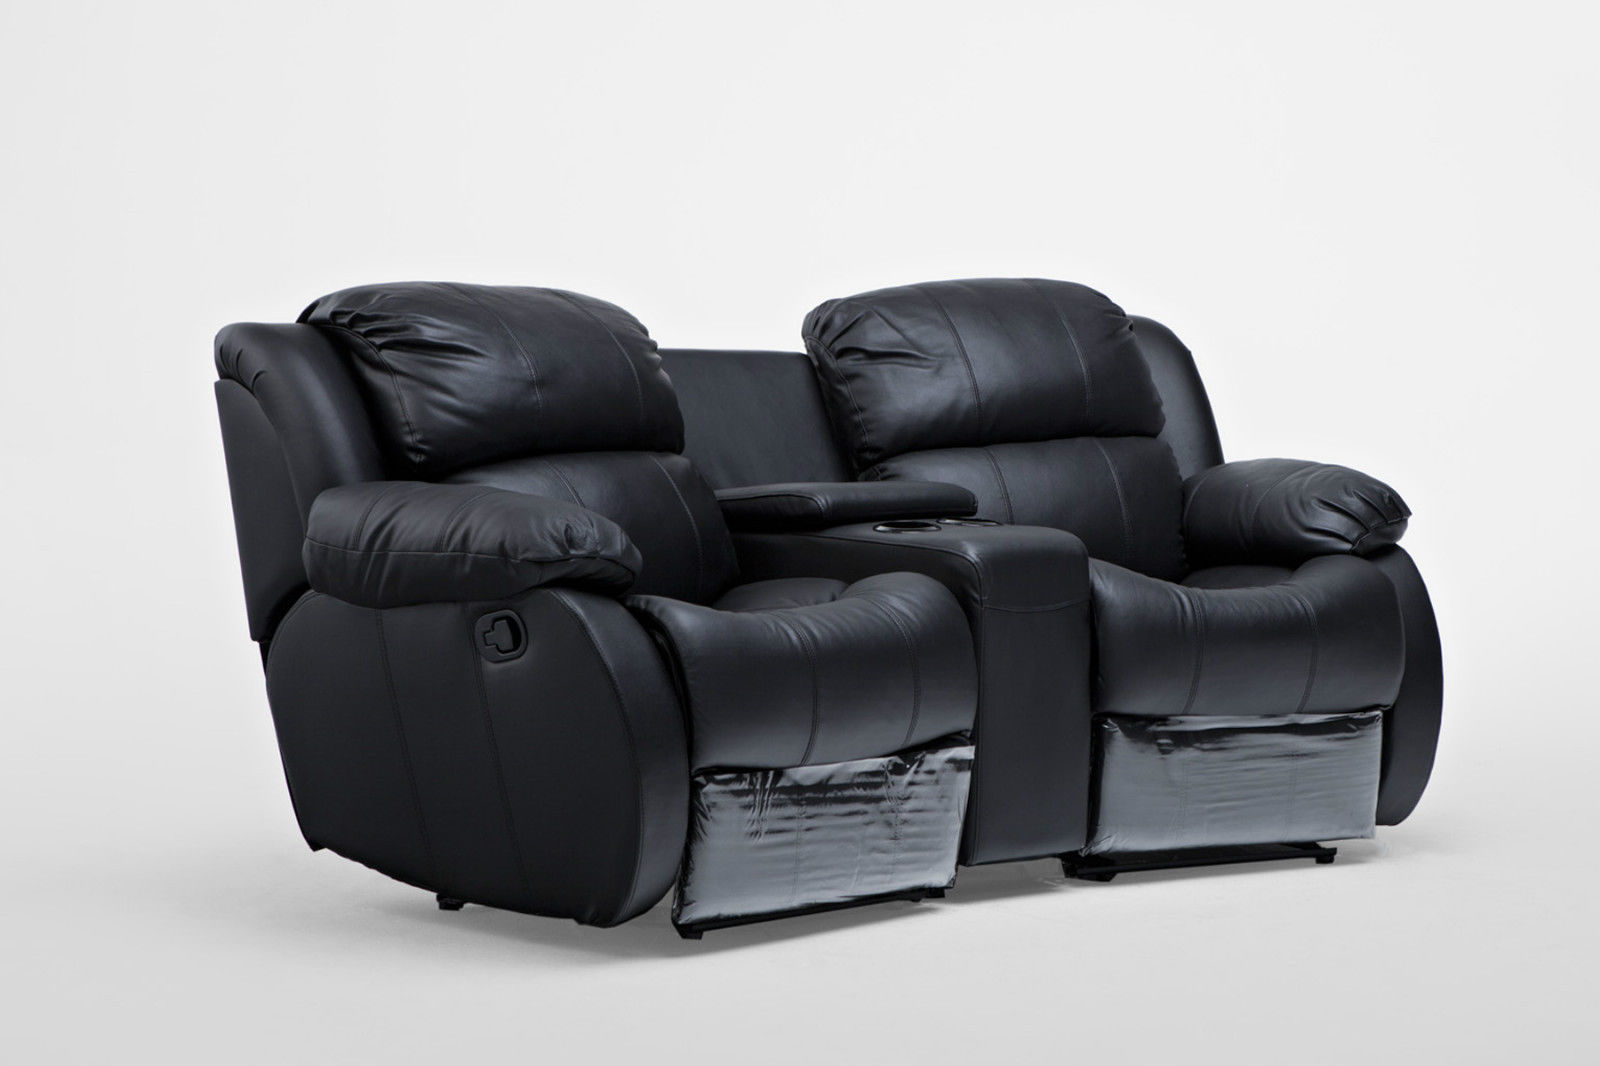 Nikki Leather 2 Seater Home Theatre Recliner Sofa Lounge  : 23 088img3 from www.ebay.com.au size 1600 x 1066 jpeg 97kB